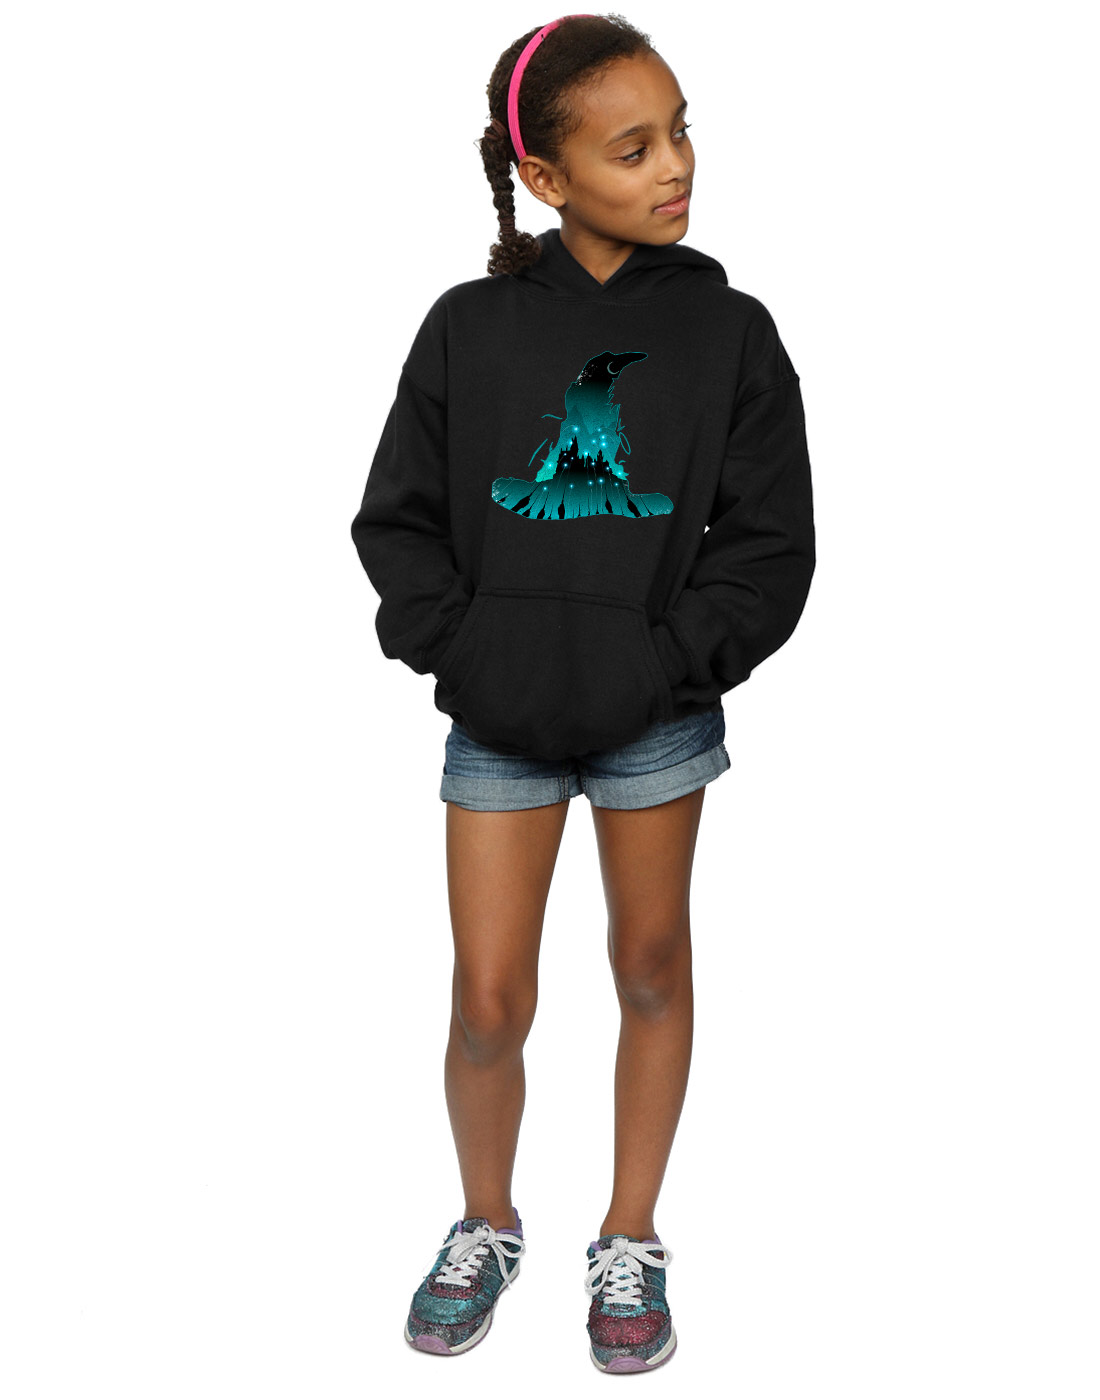 1100x1400 Harry Potter Girls Hogwarts Silhouette Hoodie Ebay